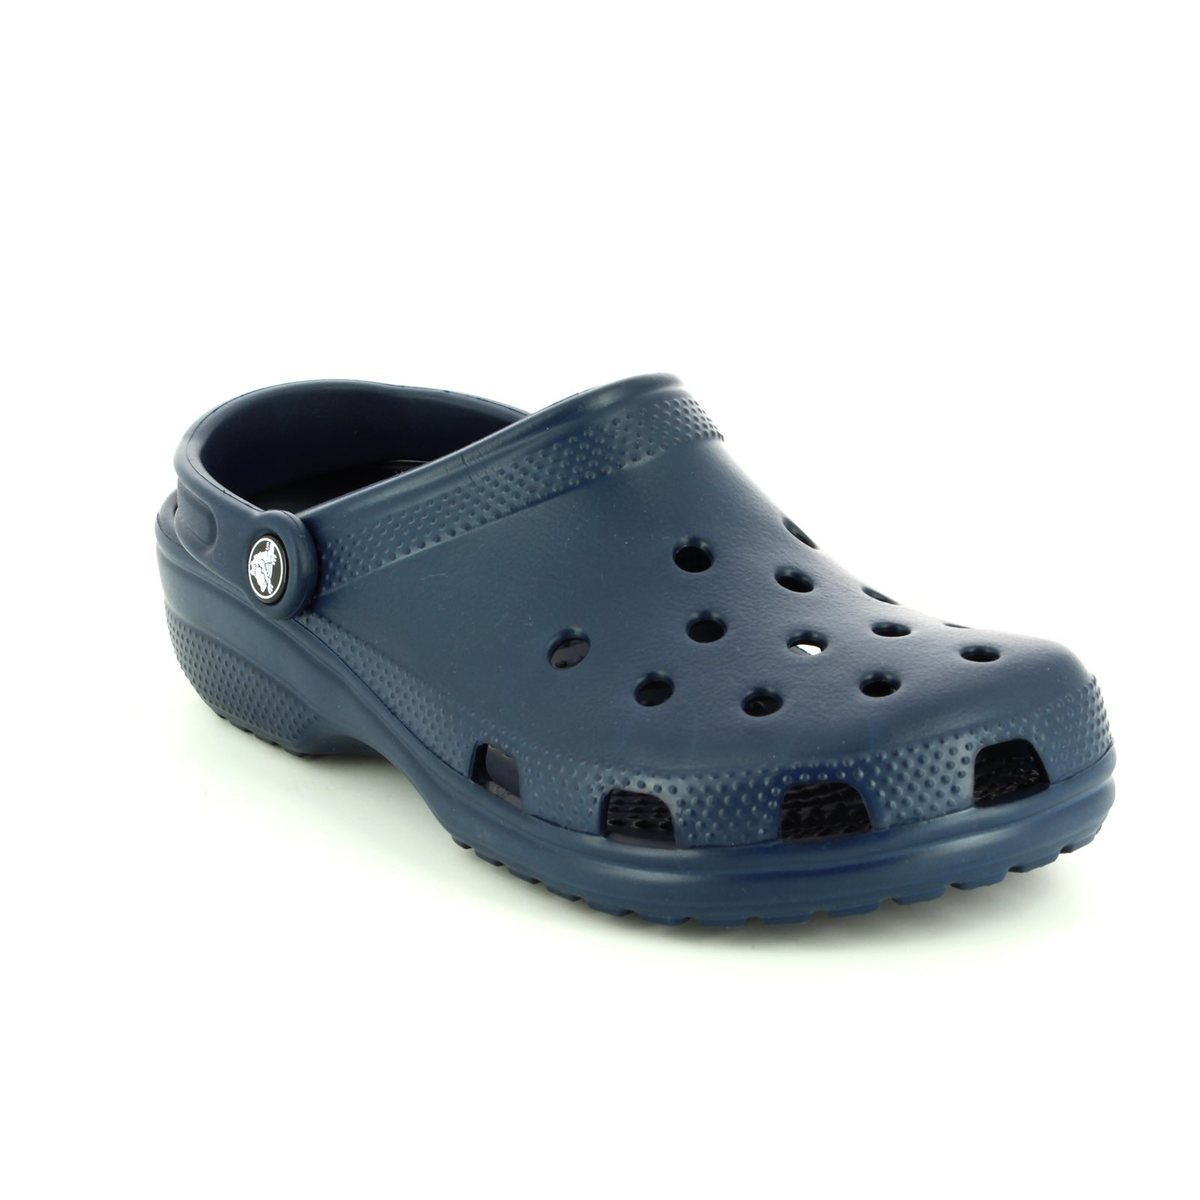 New in Packaging Crocs Classic Navy Roomy Fit 10001-410 Unisex